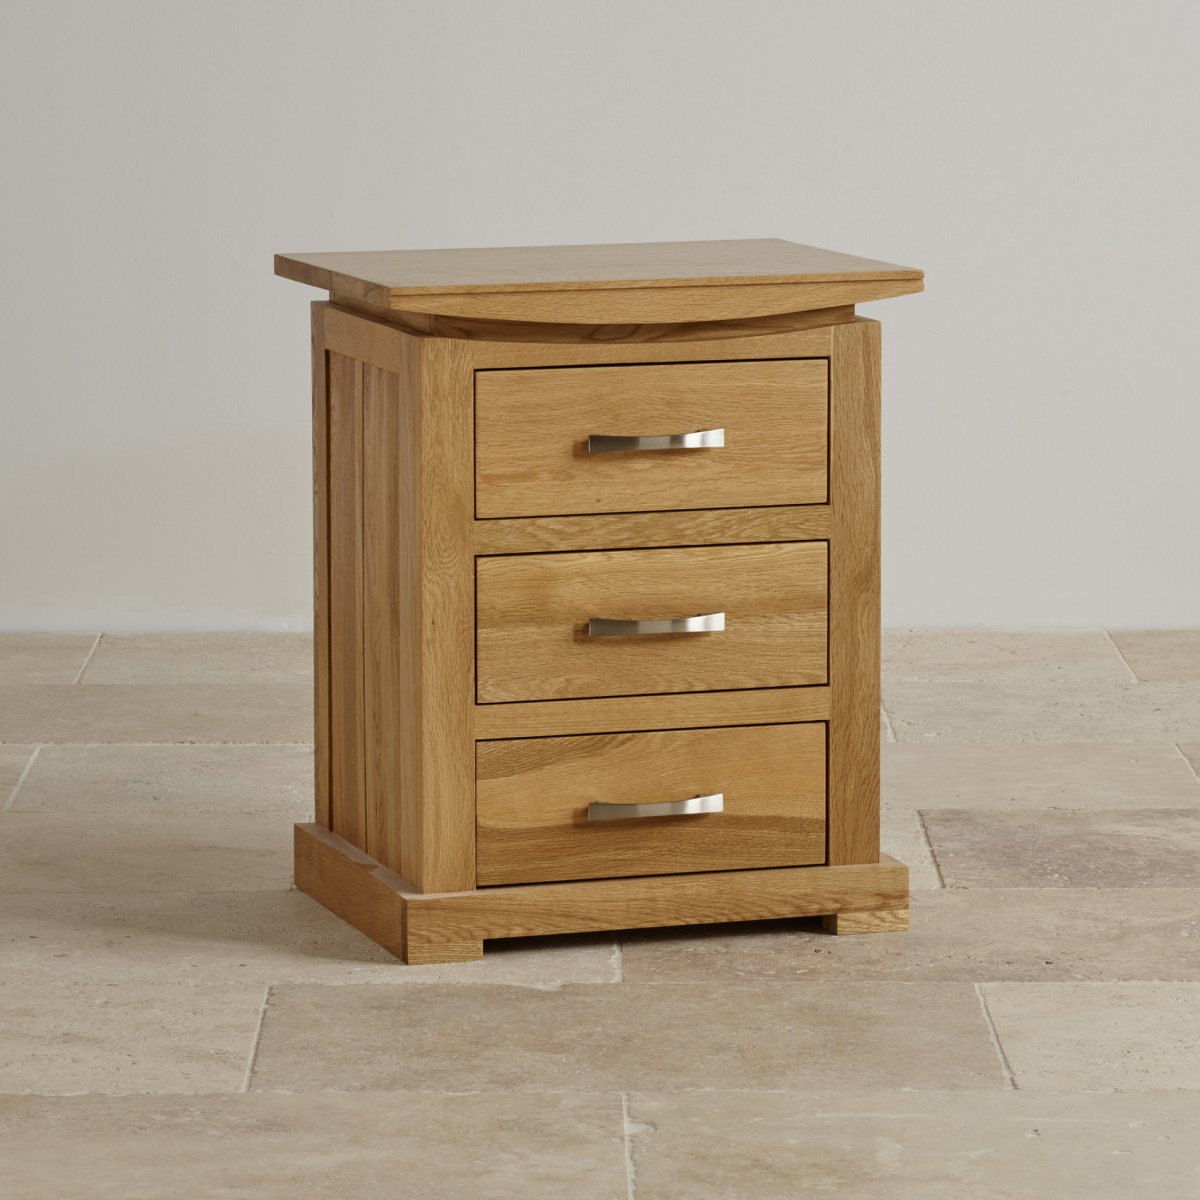 Tokyo 3 Drawer Bedside Table In Solid Oak Oak Furniture Land